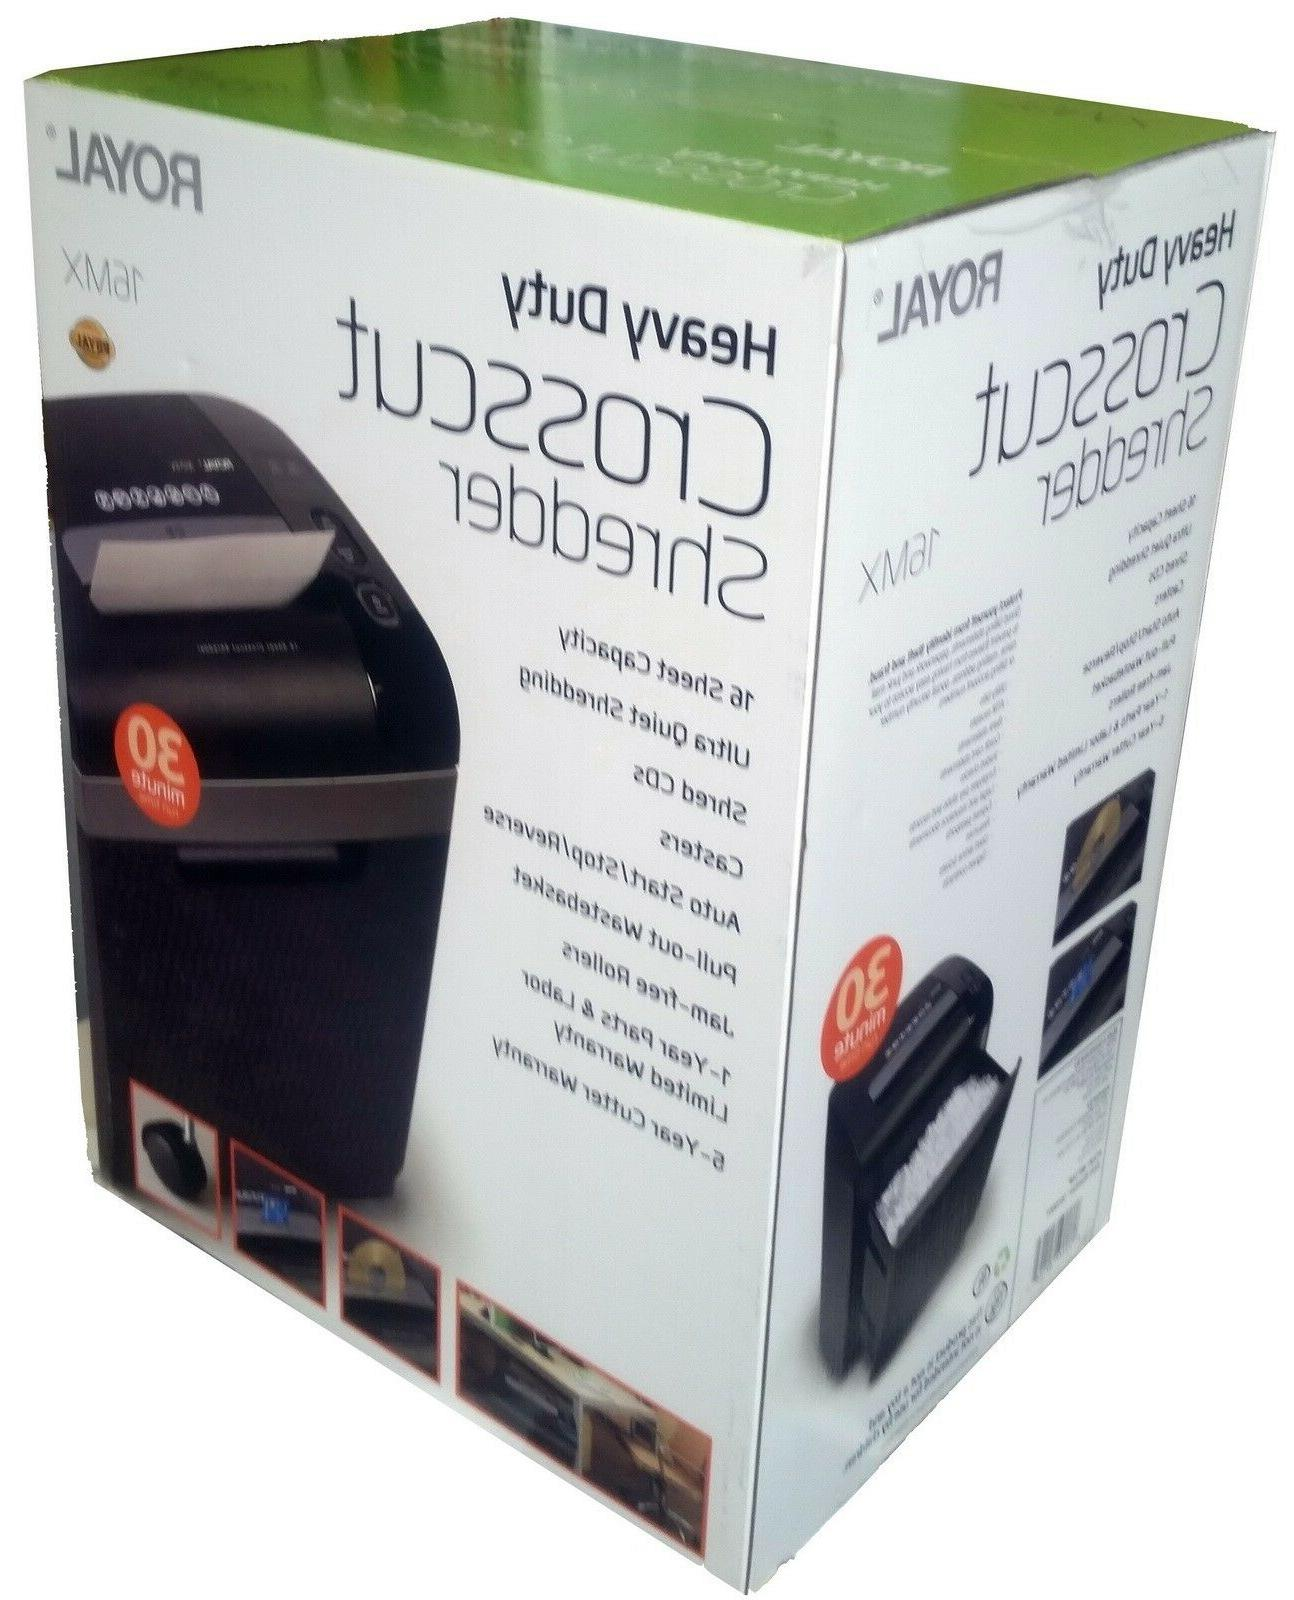 New 16 Sheet Paper Shredder 7.4 Gallon Crosscut